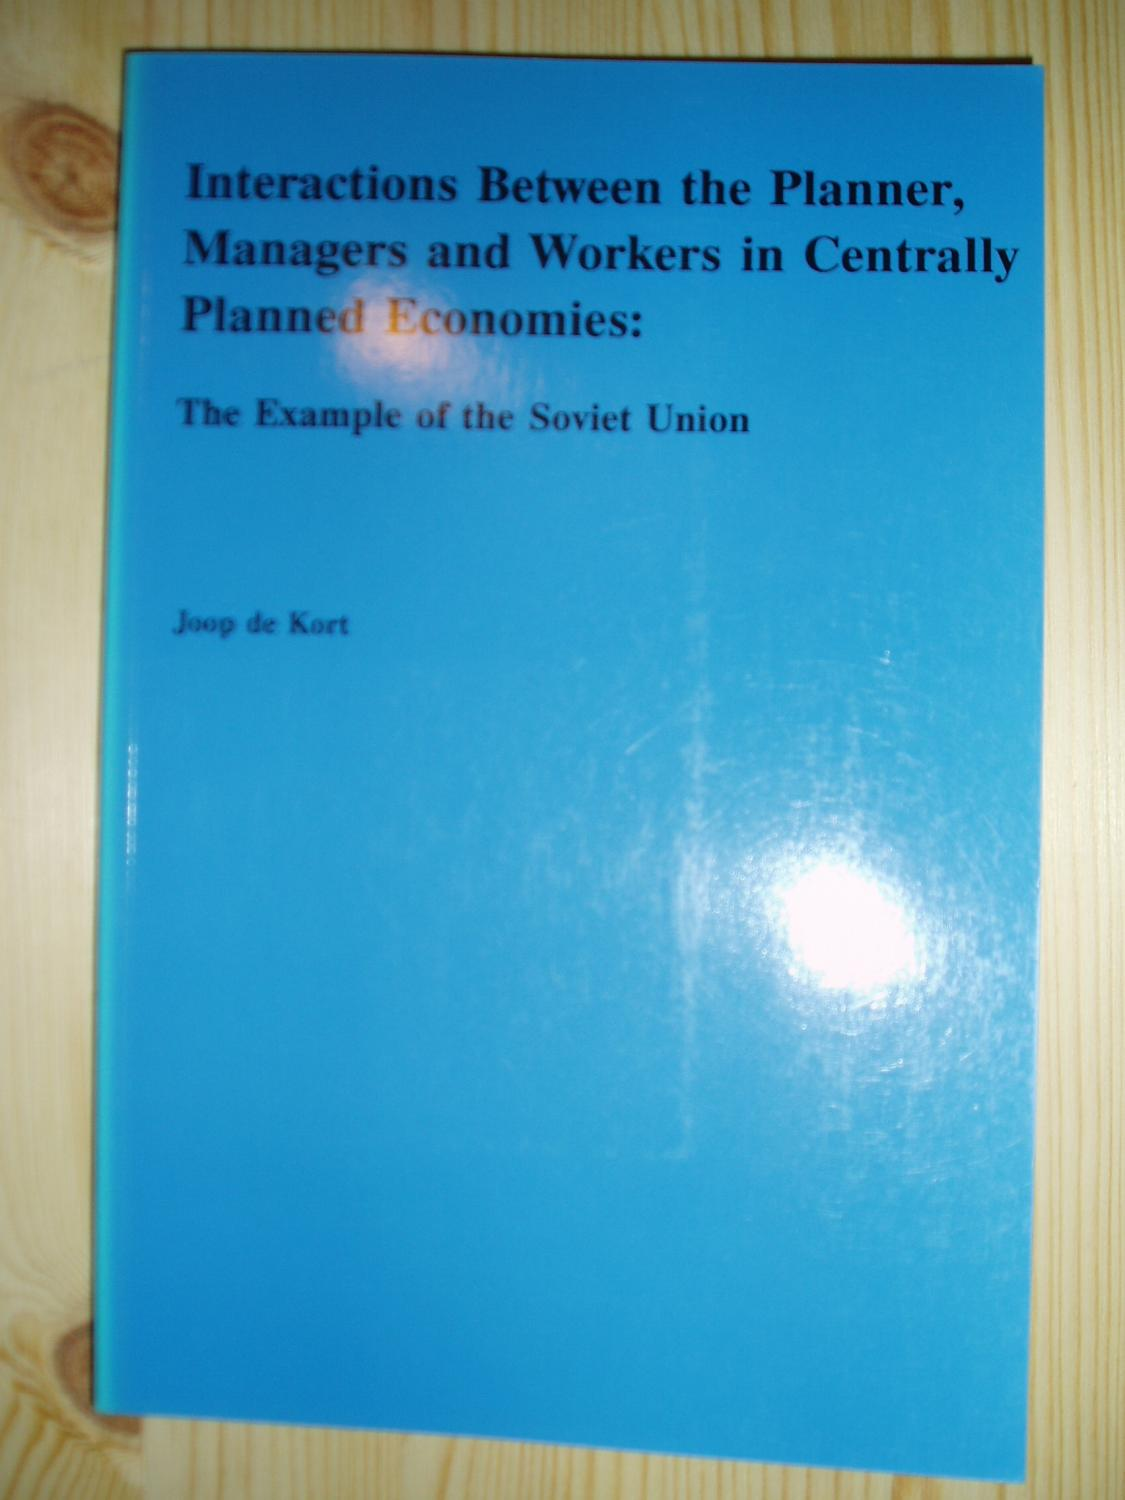 Interactions Between the Planner, Managers and Workers in Centrally Planned Economies: The Example of the Soviet Union